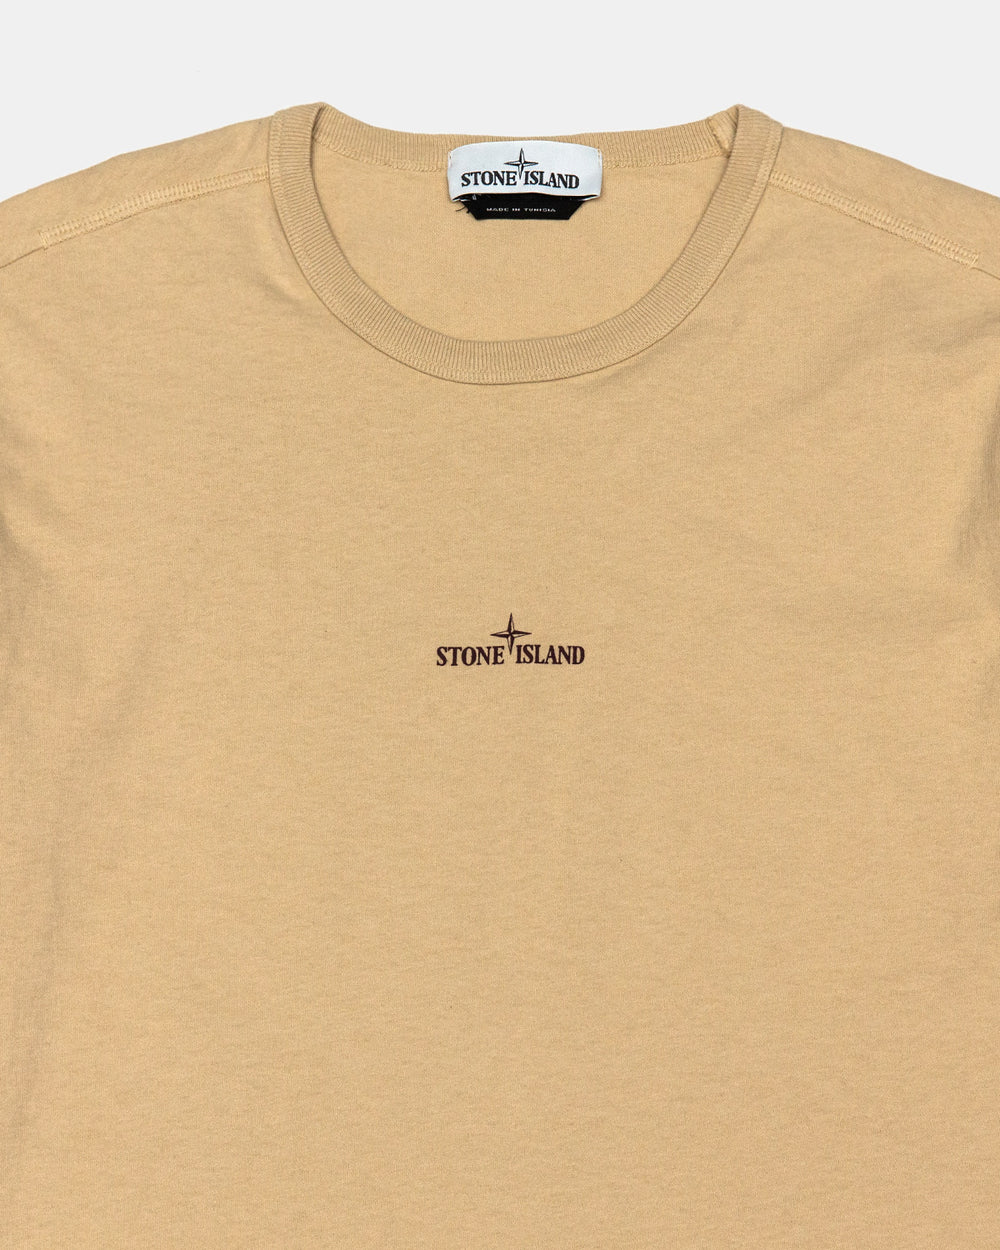 Stone Island - 23380 'Graphic One' Tee (Natural Beige)